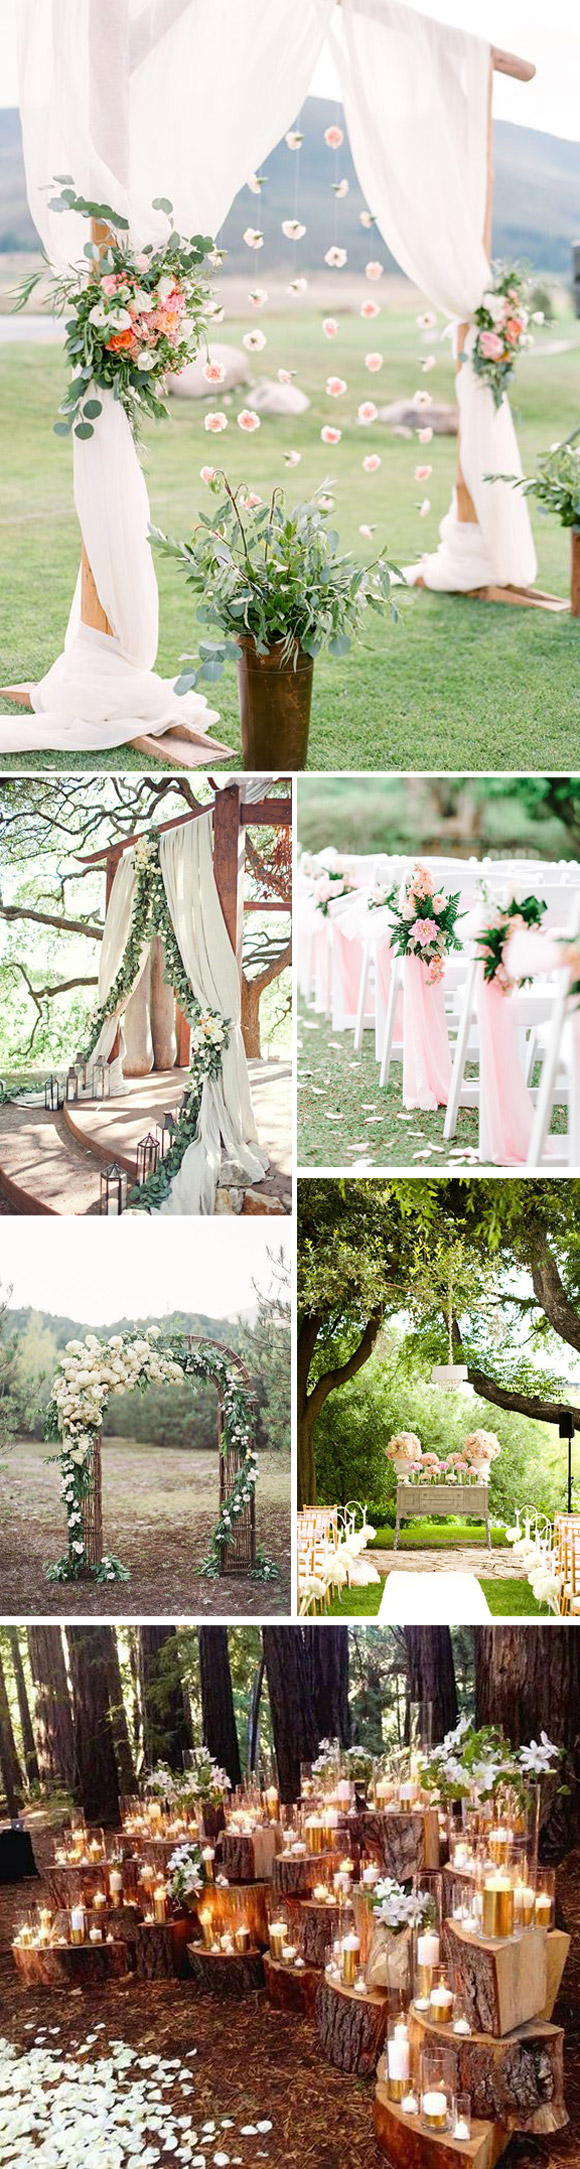 Ideas Para Decorar El Altar De Tu Boda